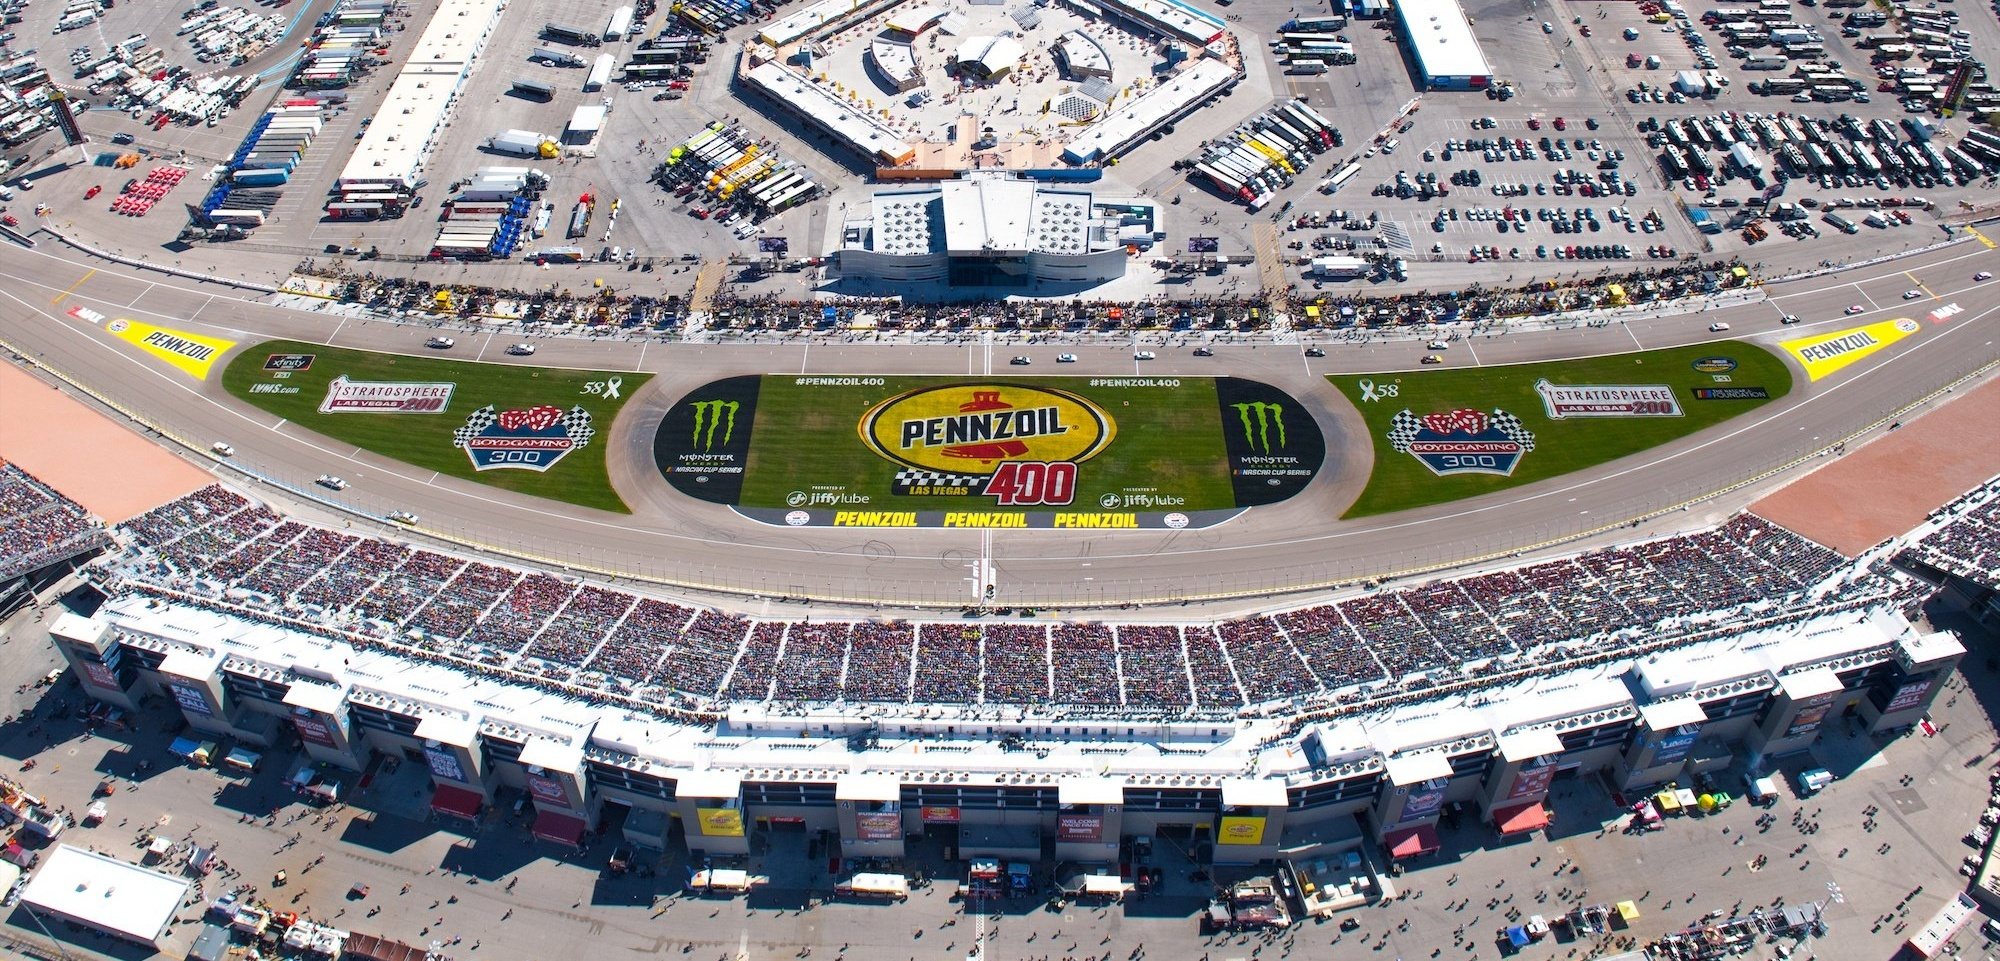 pennzoil-400-header-394978-edited.jpg